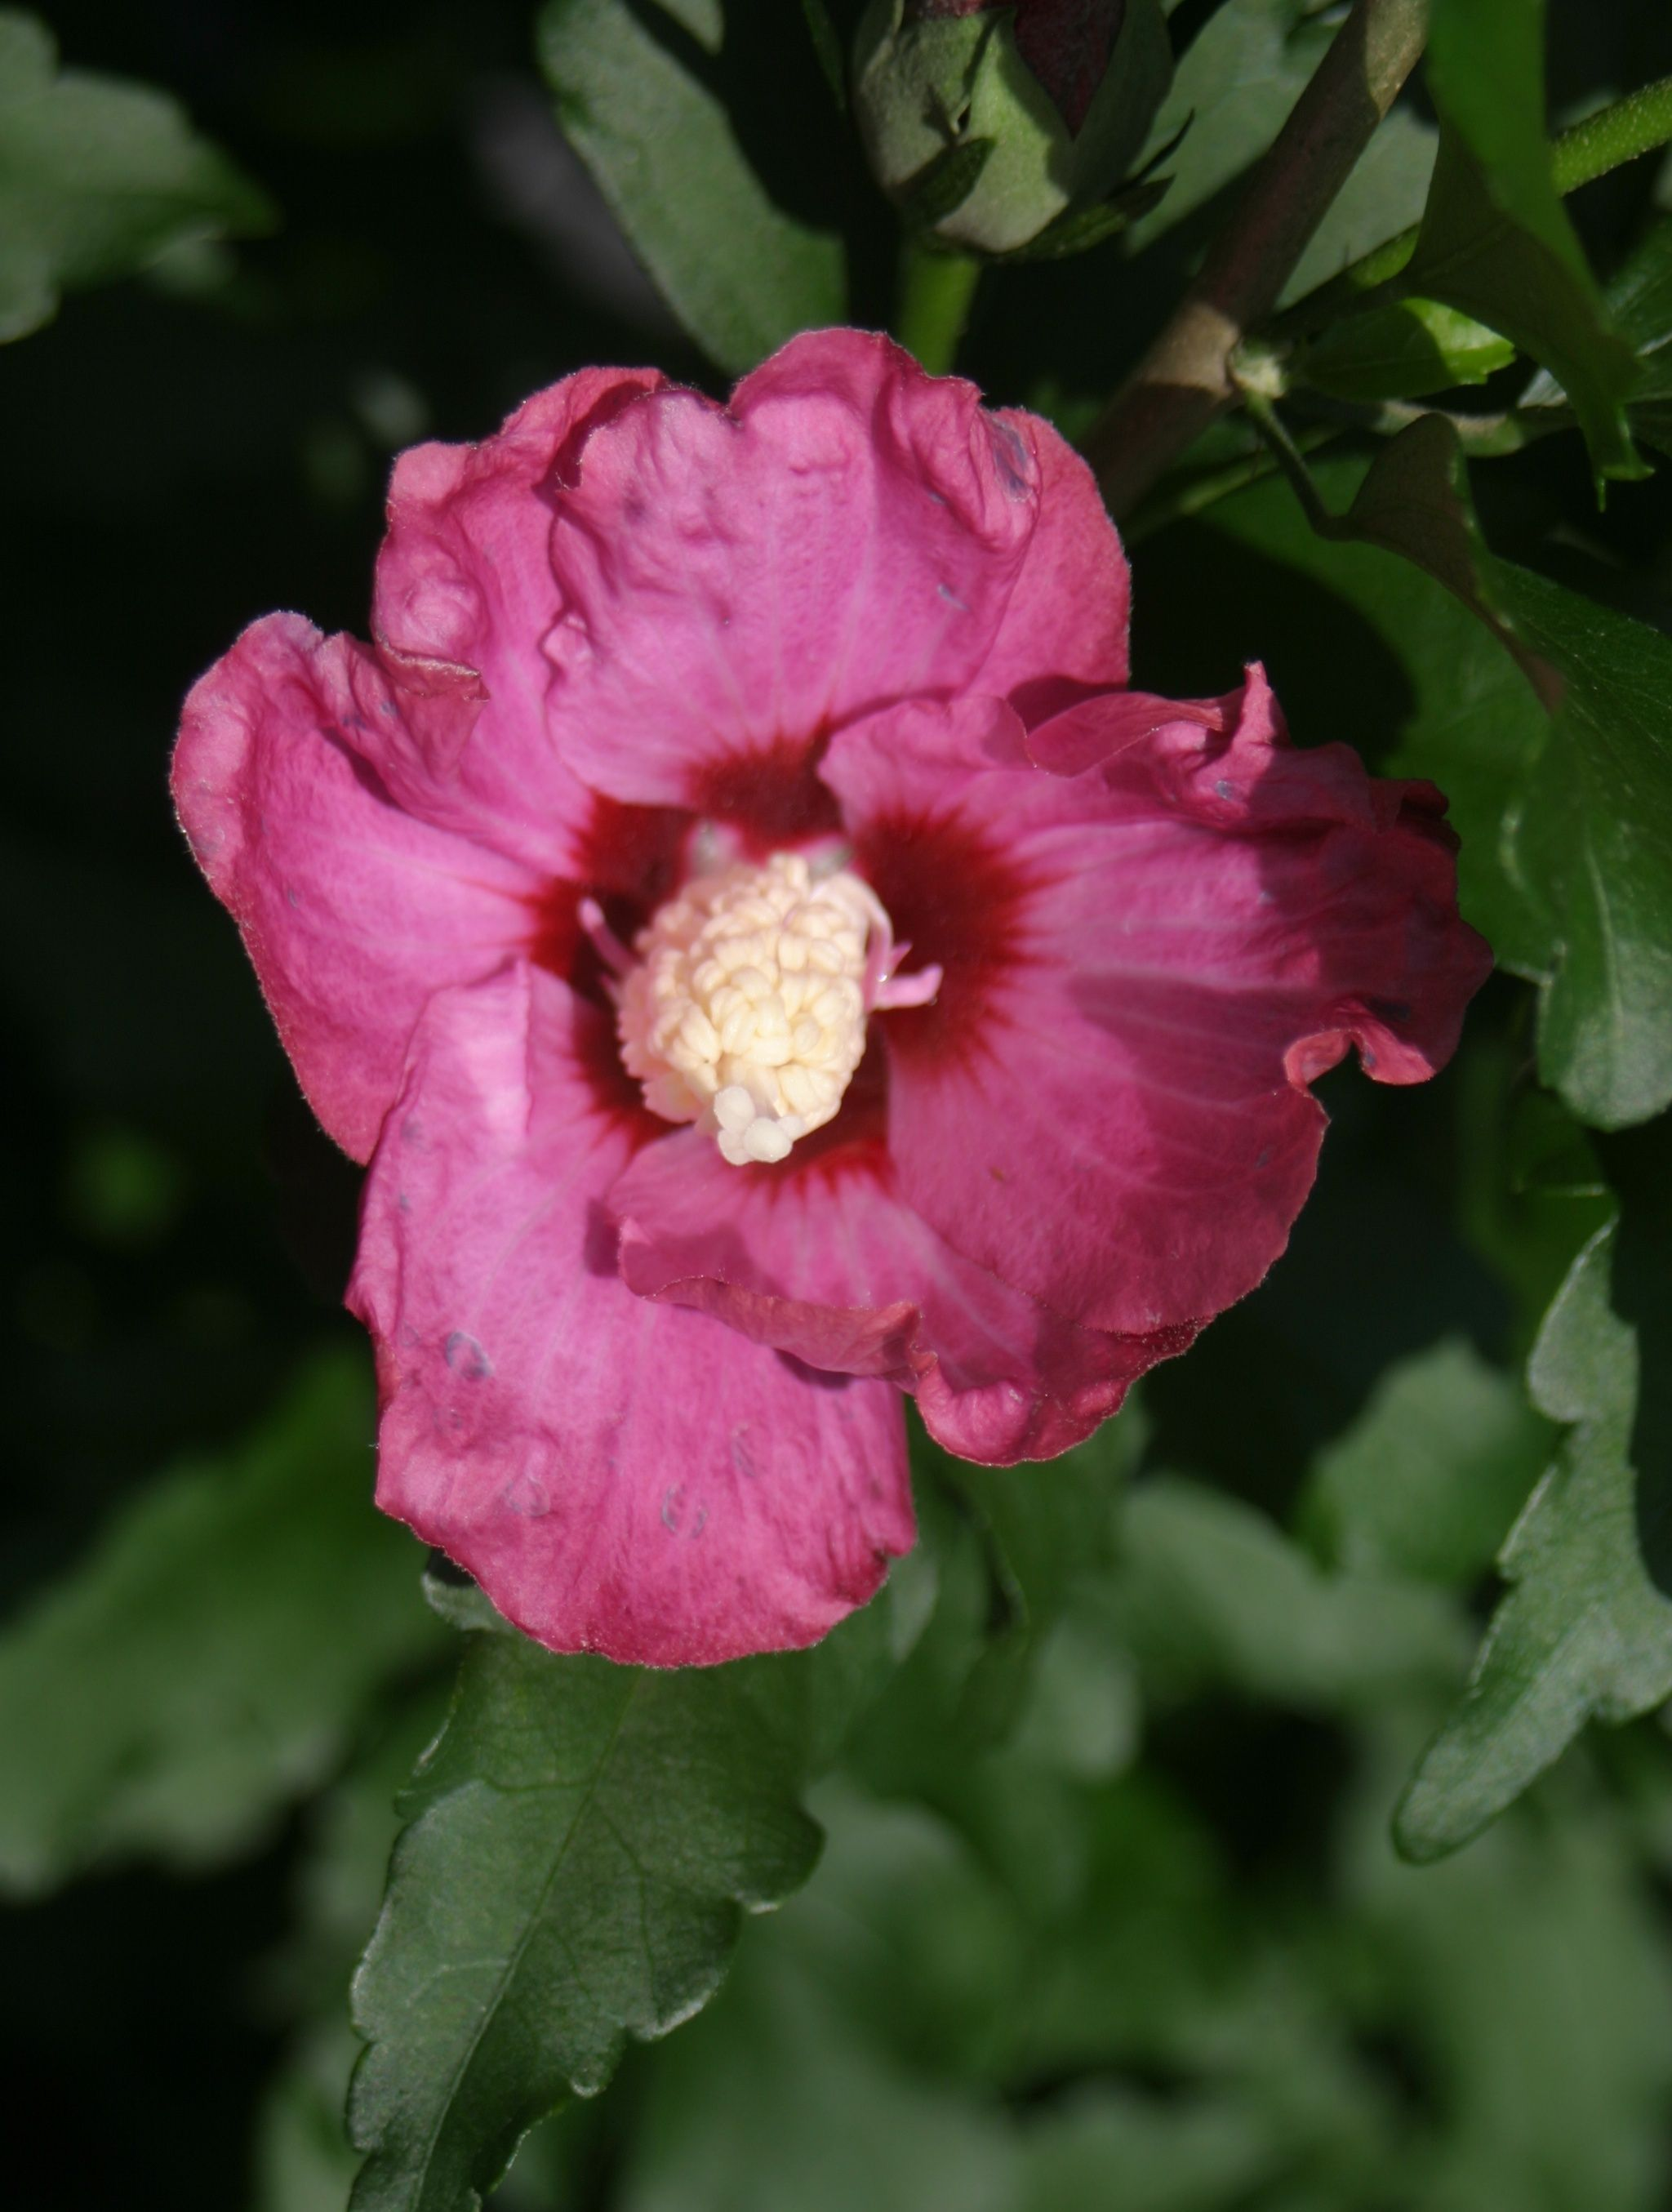 Lil kim red rose of sharon hibiscus syriacus perennials lil kim red stands 3 4 feet in height once mature and features izmirmasajfo Choice Image